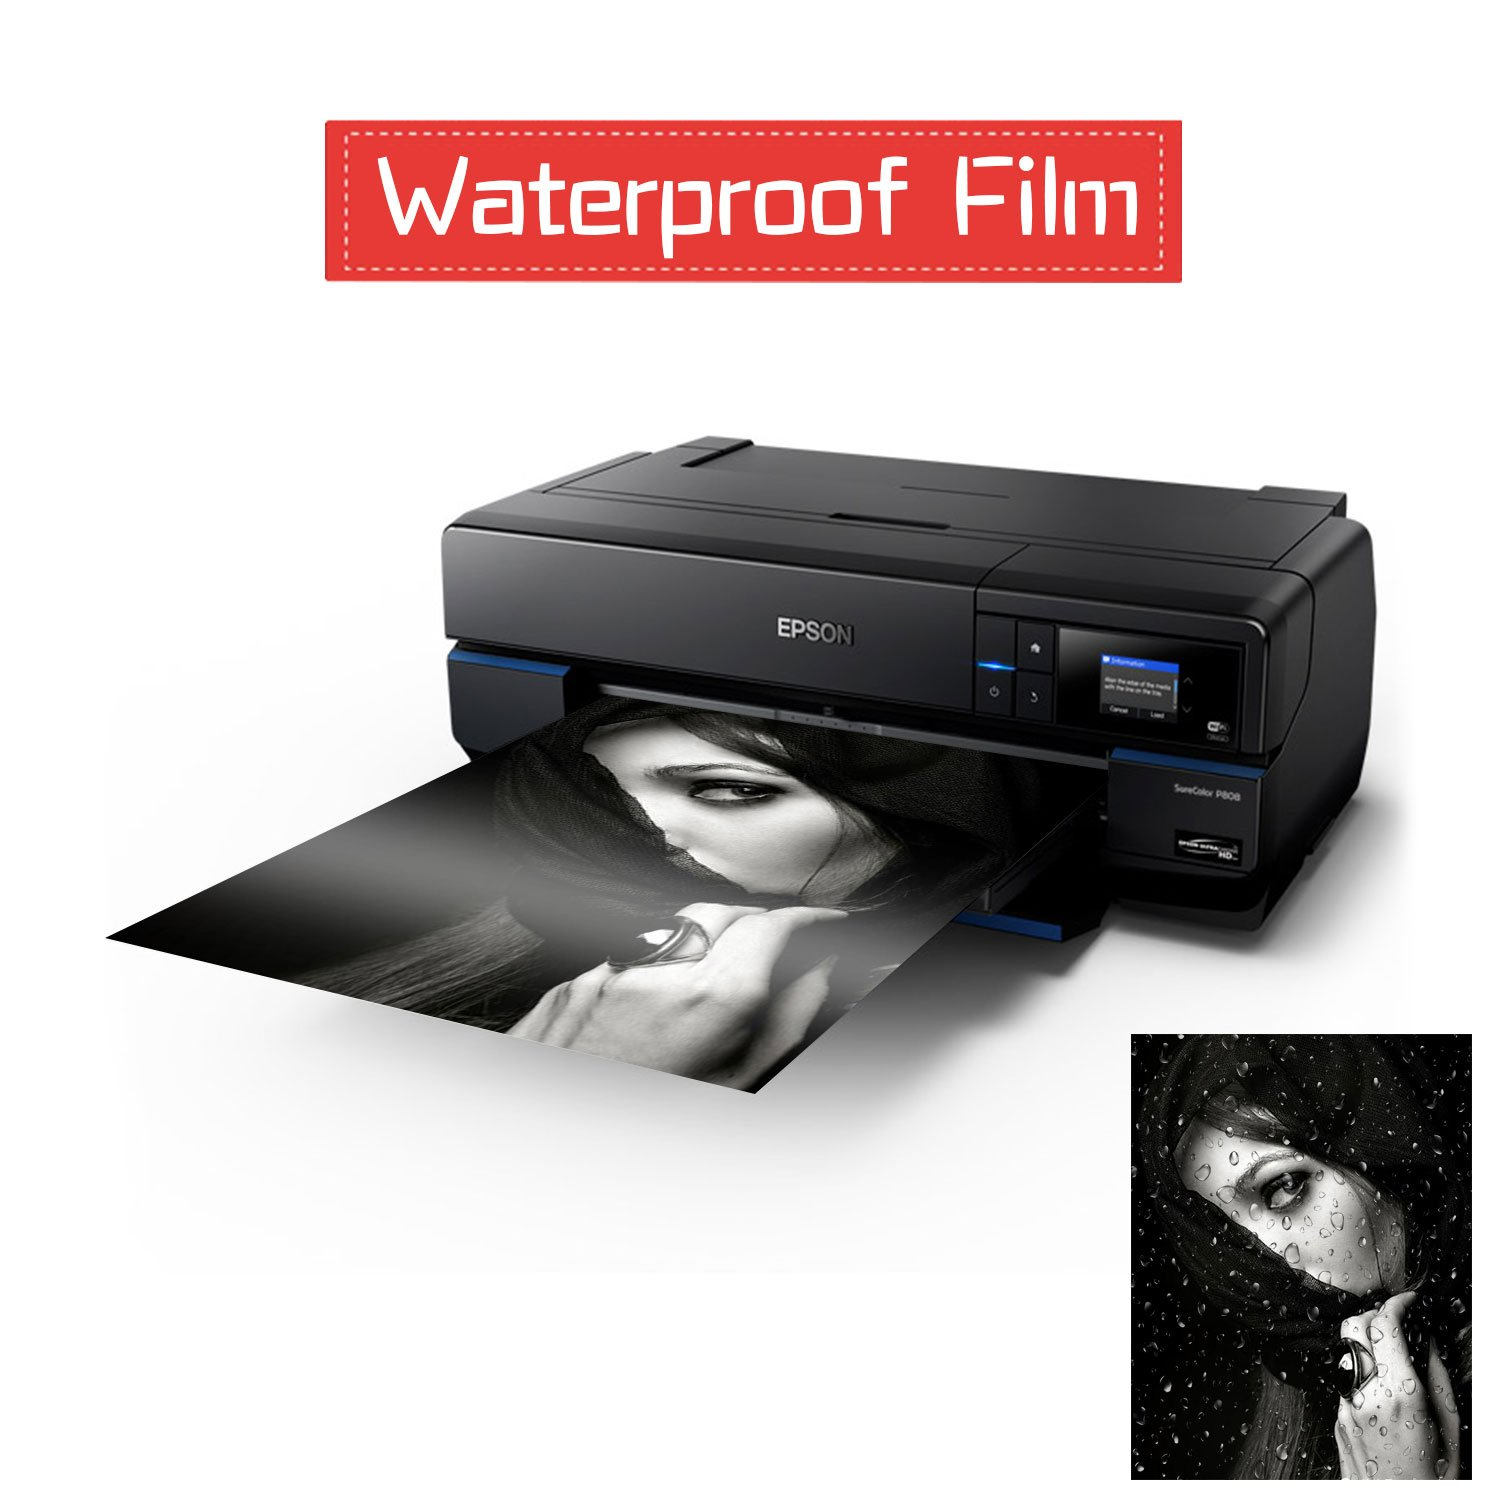 for Screen Printing A-SUB 100 Sheets Waterproof Inkjet Transparency Film 8.5 x 11 inch